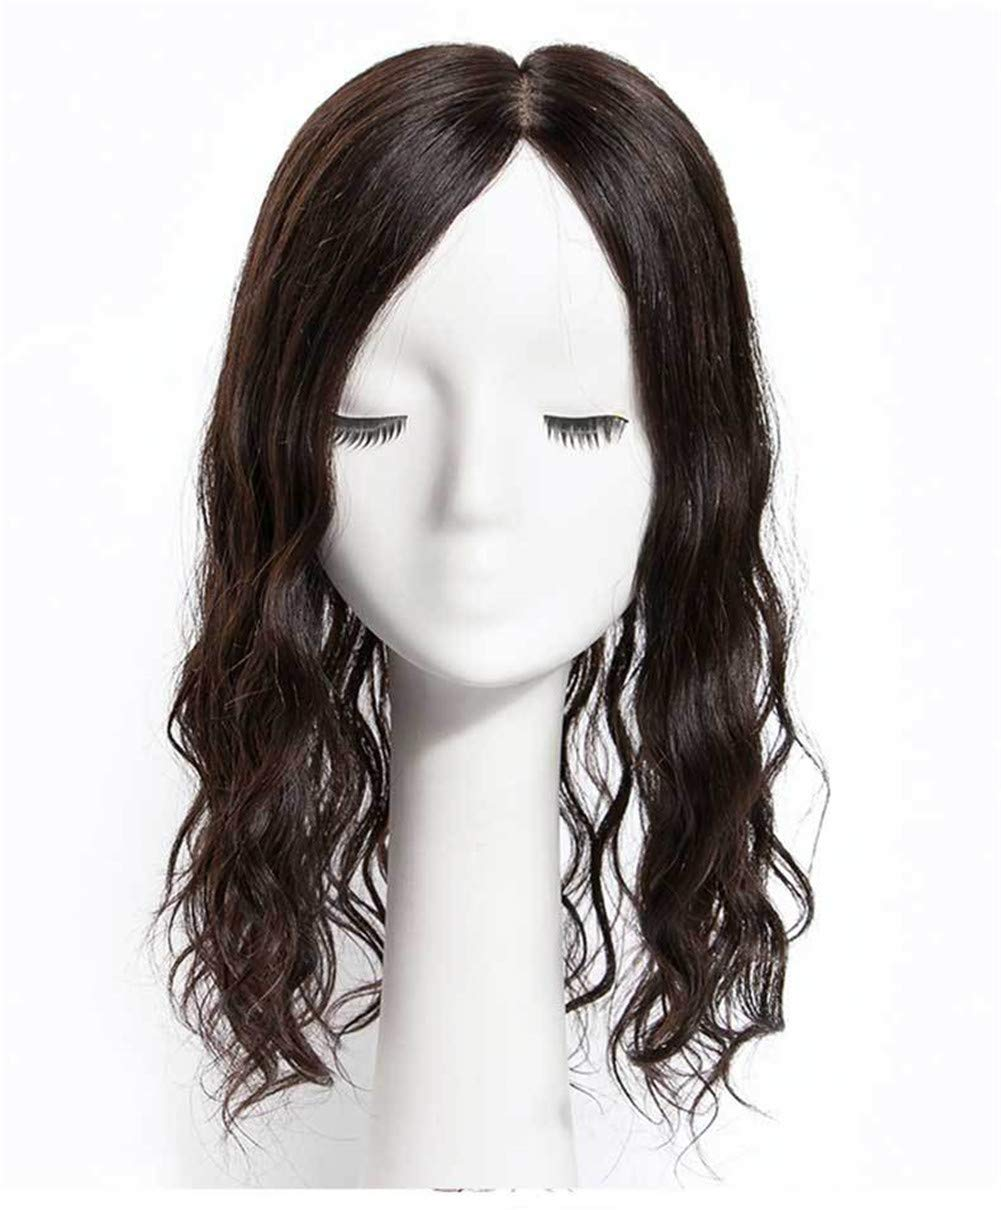 5.5 Inch x 5.5 Inch Silk Base Human Hair Crown Toppers for Women with Thinning and Grey Hair, Wavy Clips on Top Wiglet Hairpieces 2